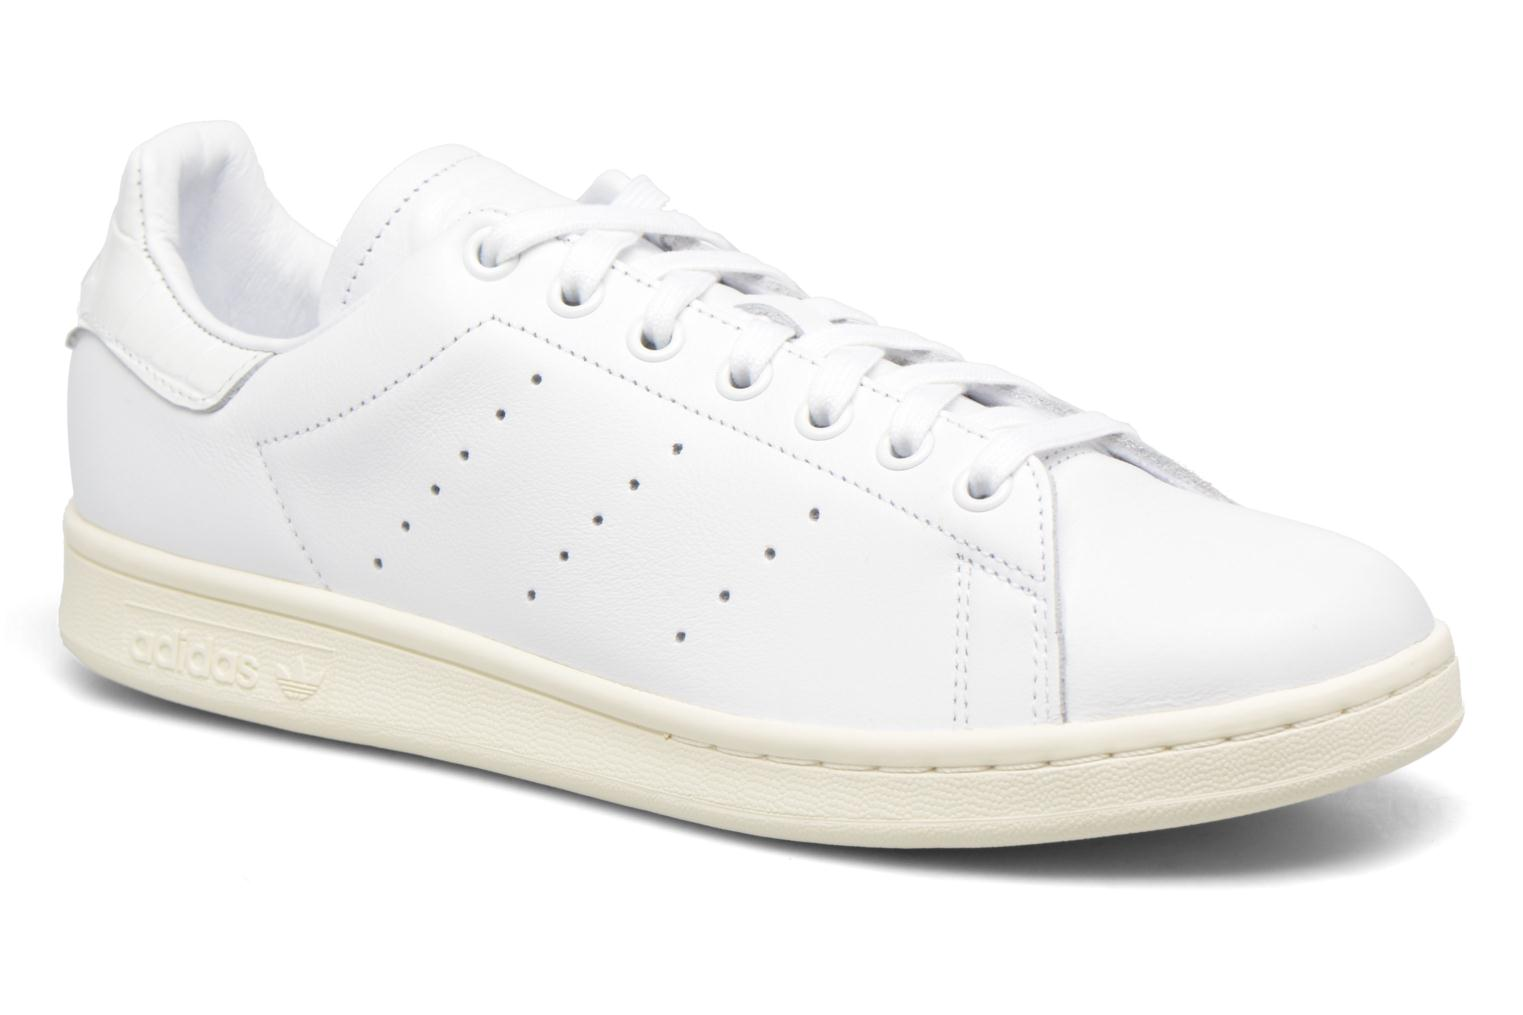 Stan Smith Ftwbla/Ftwbla/Ftwbla AH17